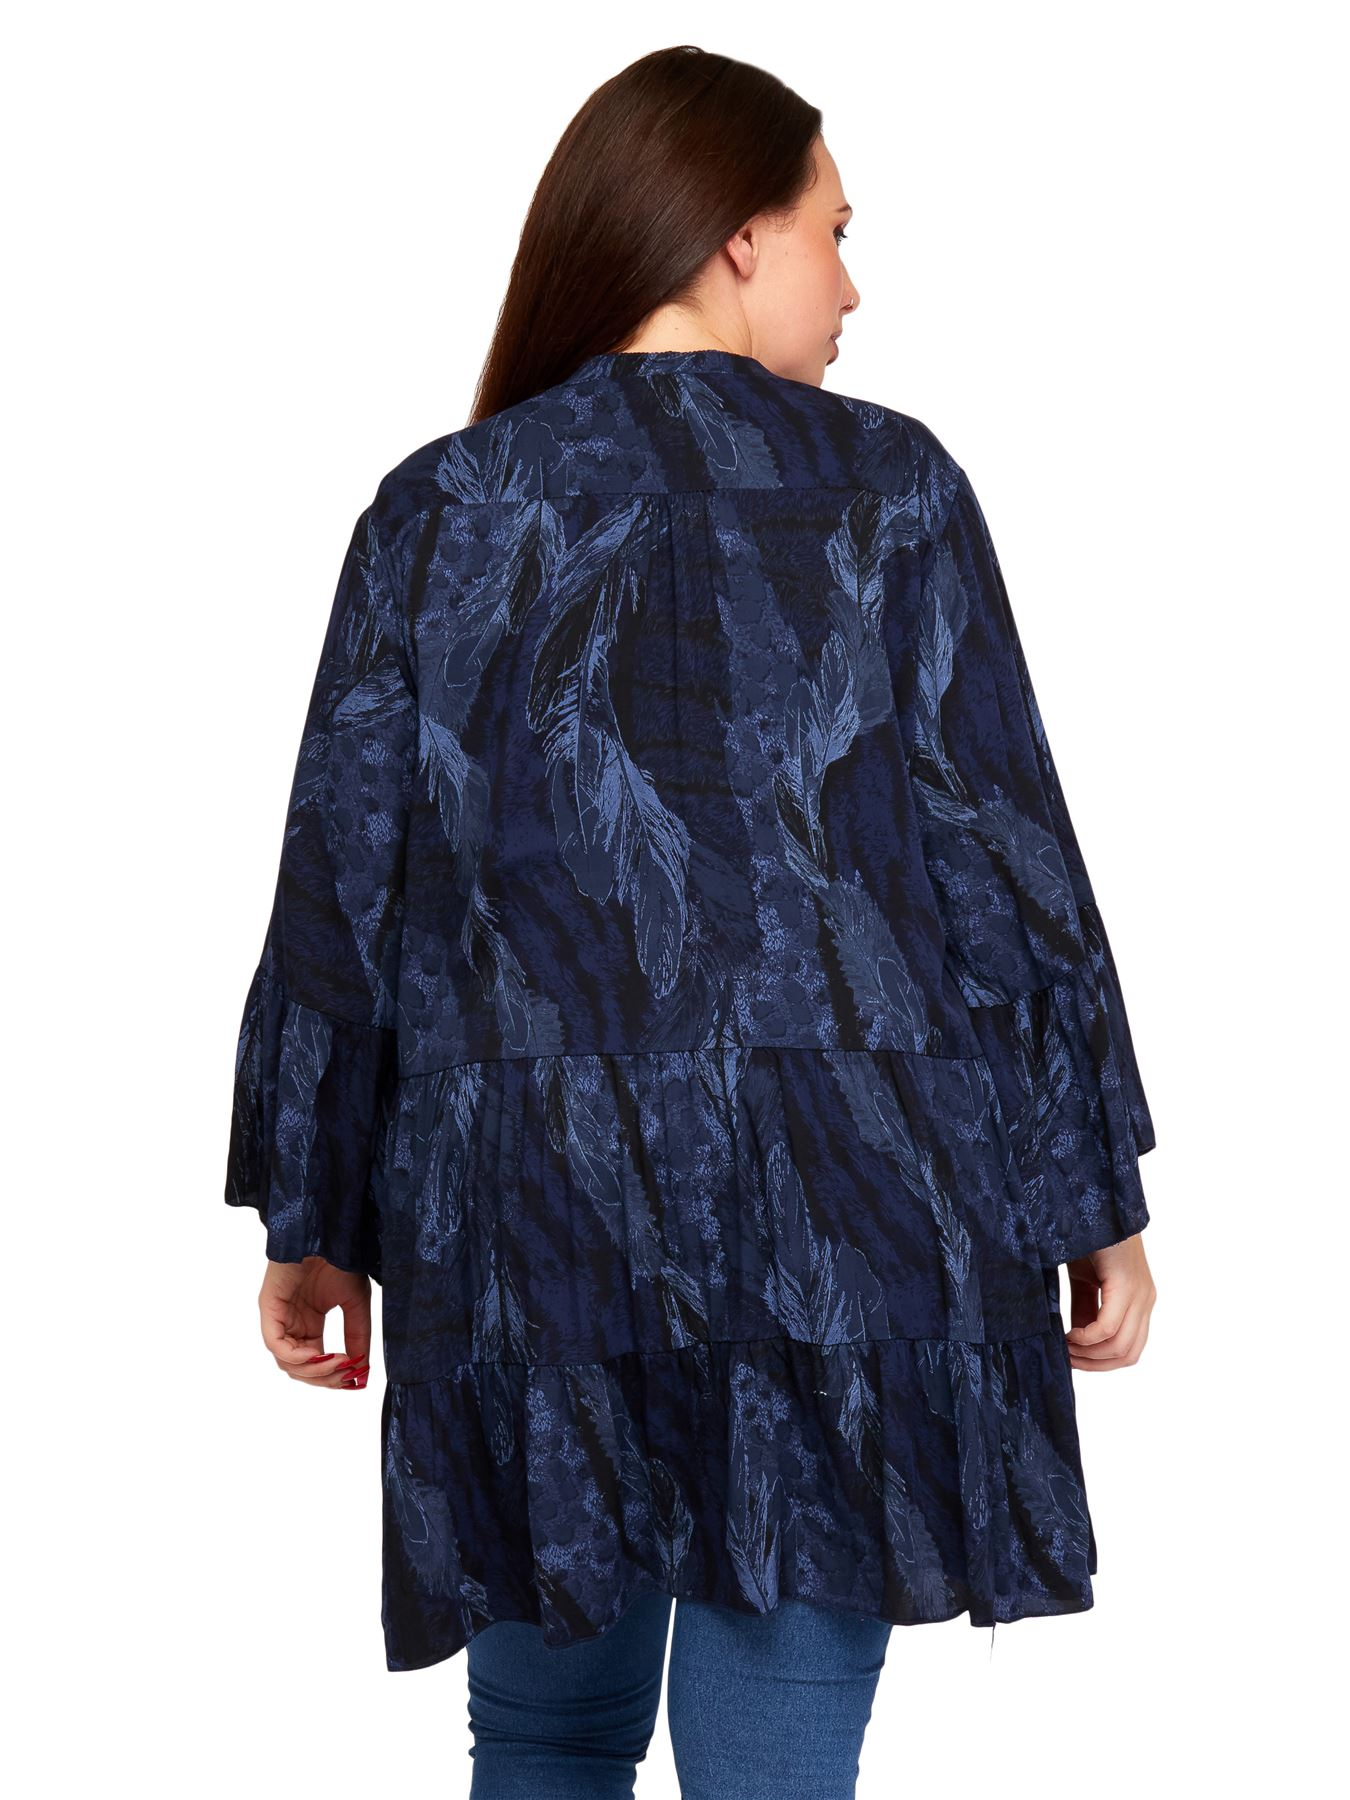 Ladies Tunic Top Feather Animal Printed Fluted Sleeves Womens Casual V-Neckline